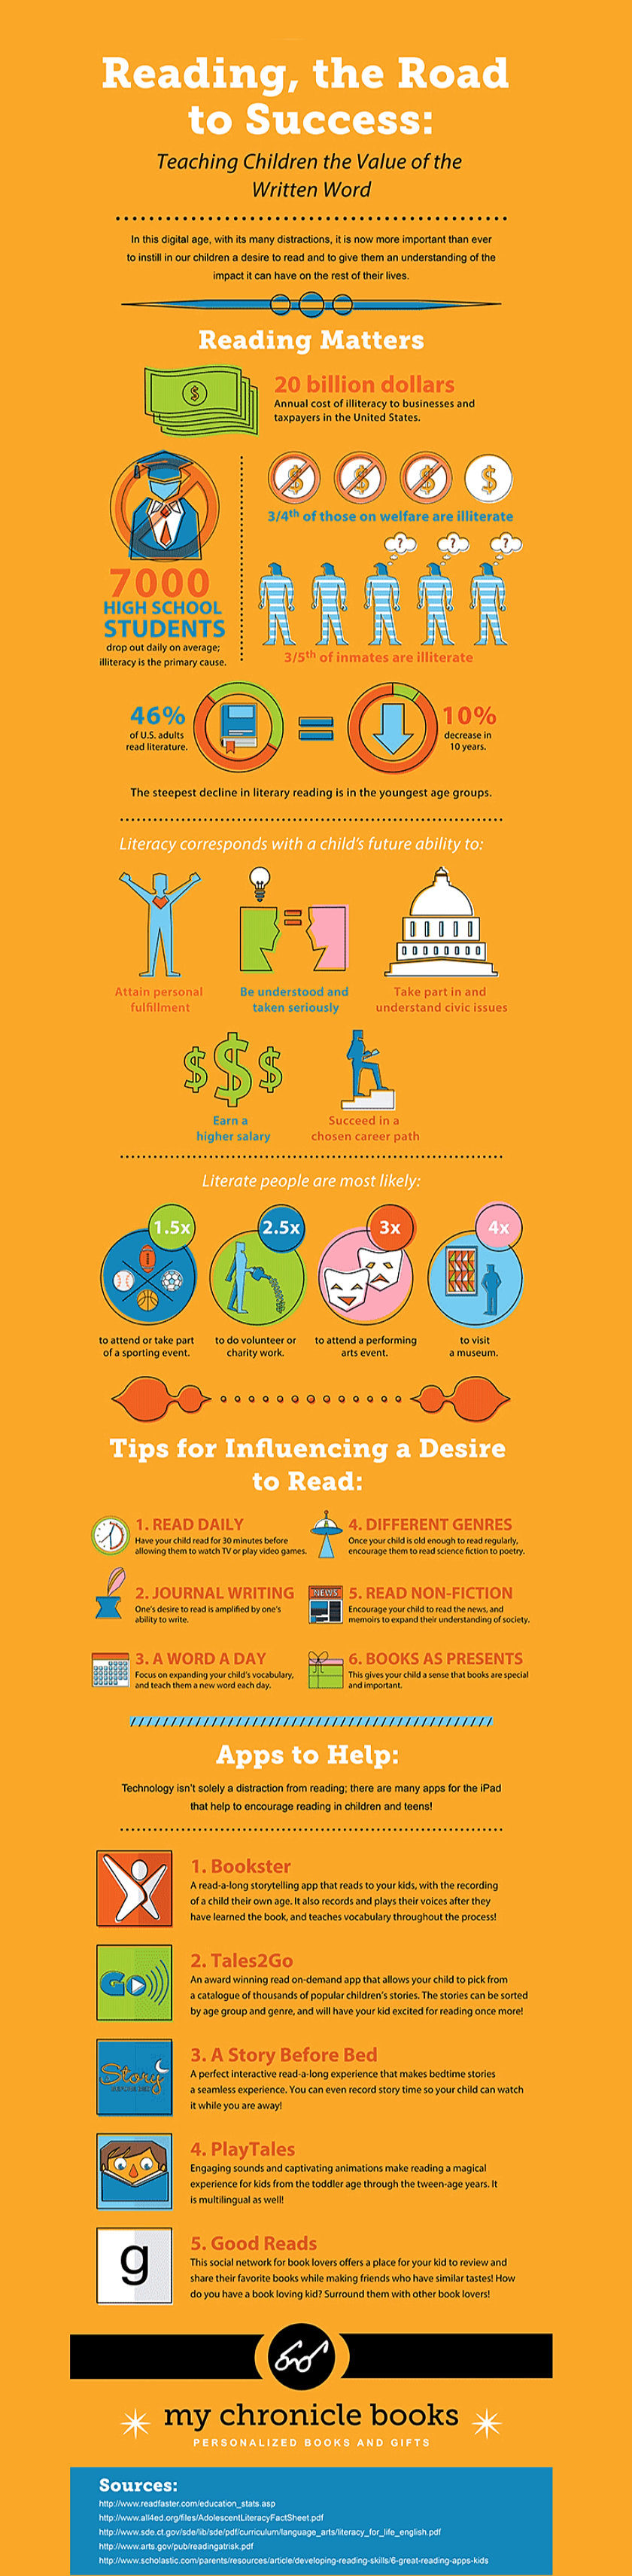 Why reading books is the road to success #infographic